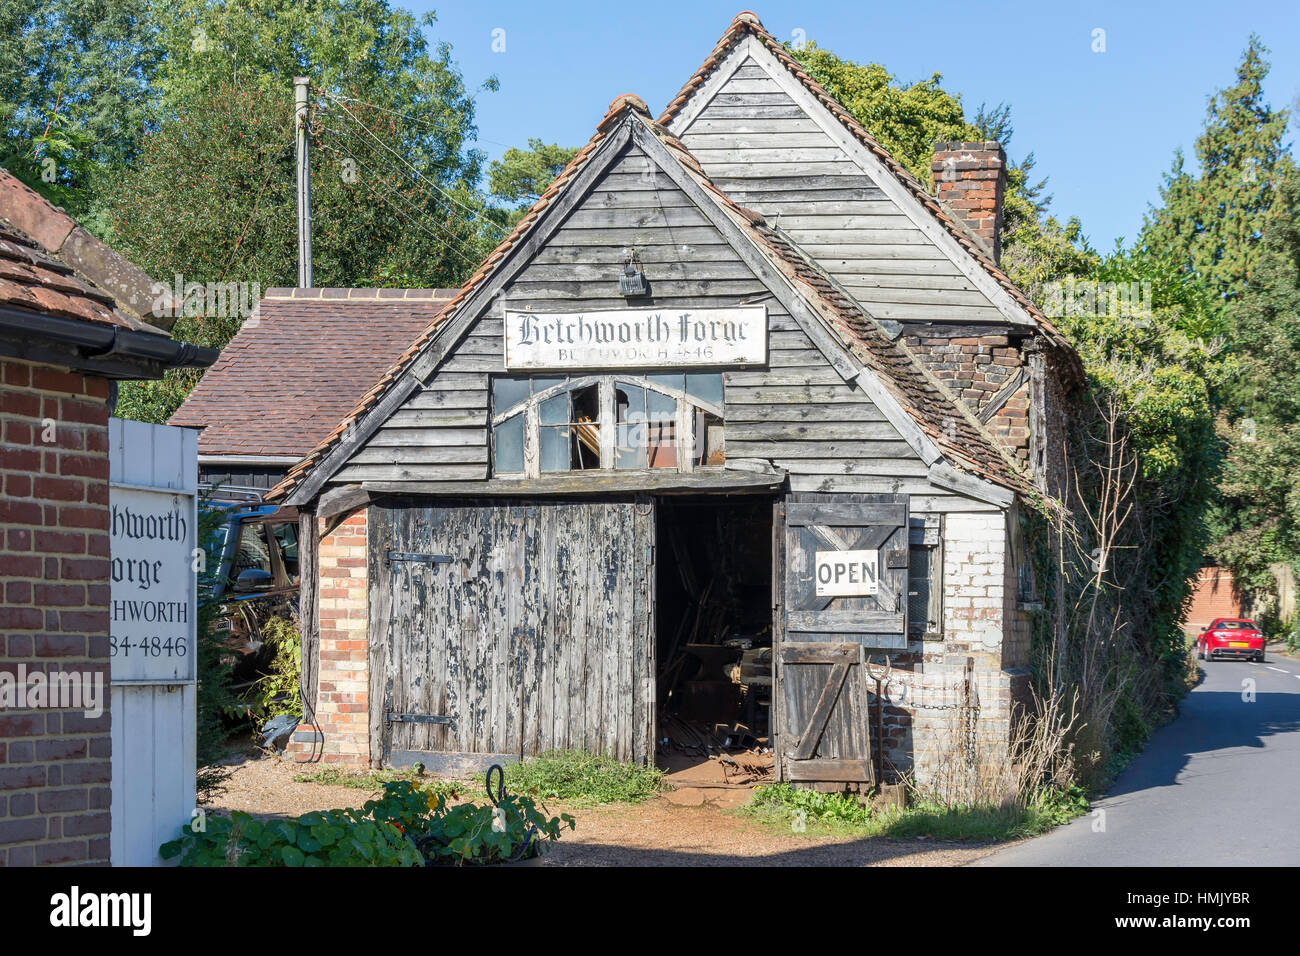 Betchworth Forge, The Street, Betchworth, Surrey, England, United Kingdom - Stock Image